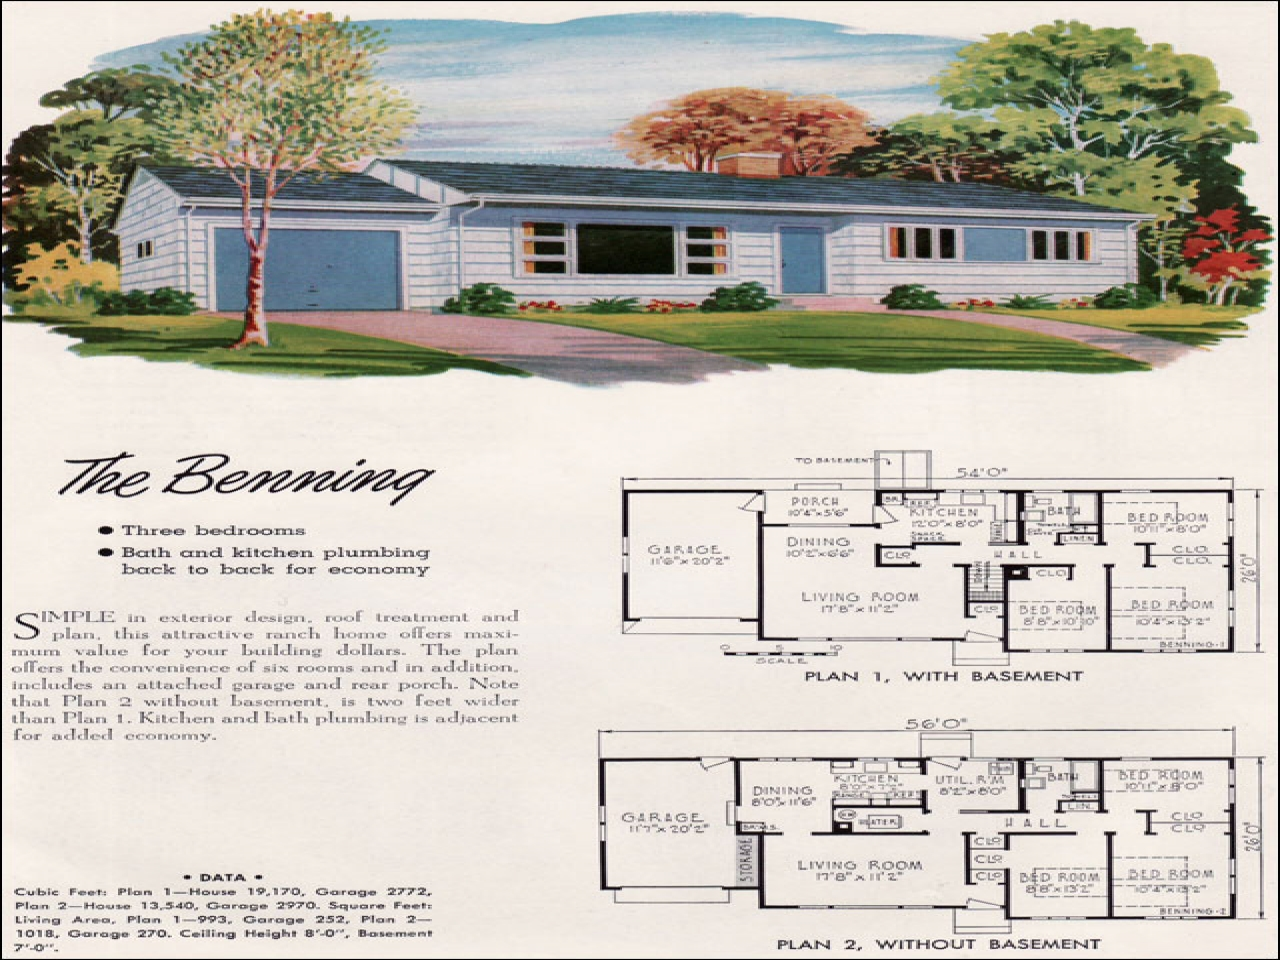 Mid century modern decorating mid century ranch style 1952 national plan service small houses Mid century modern home plans